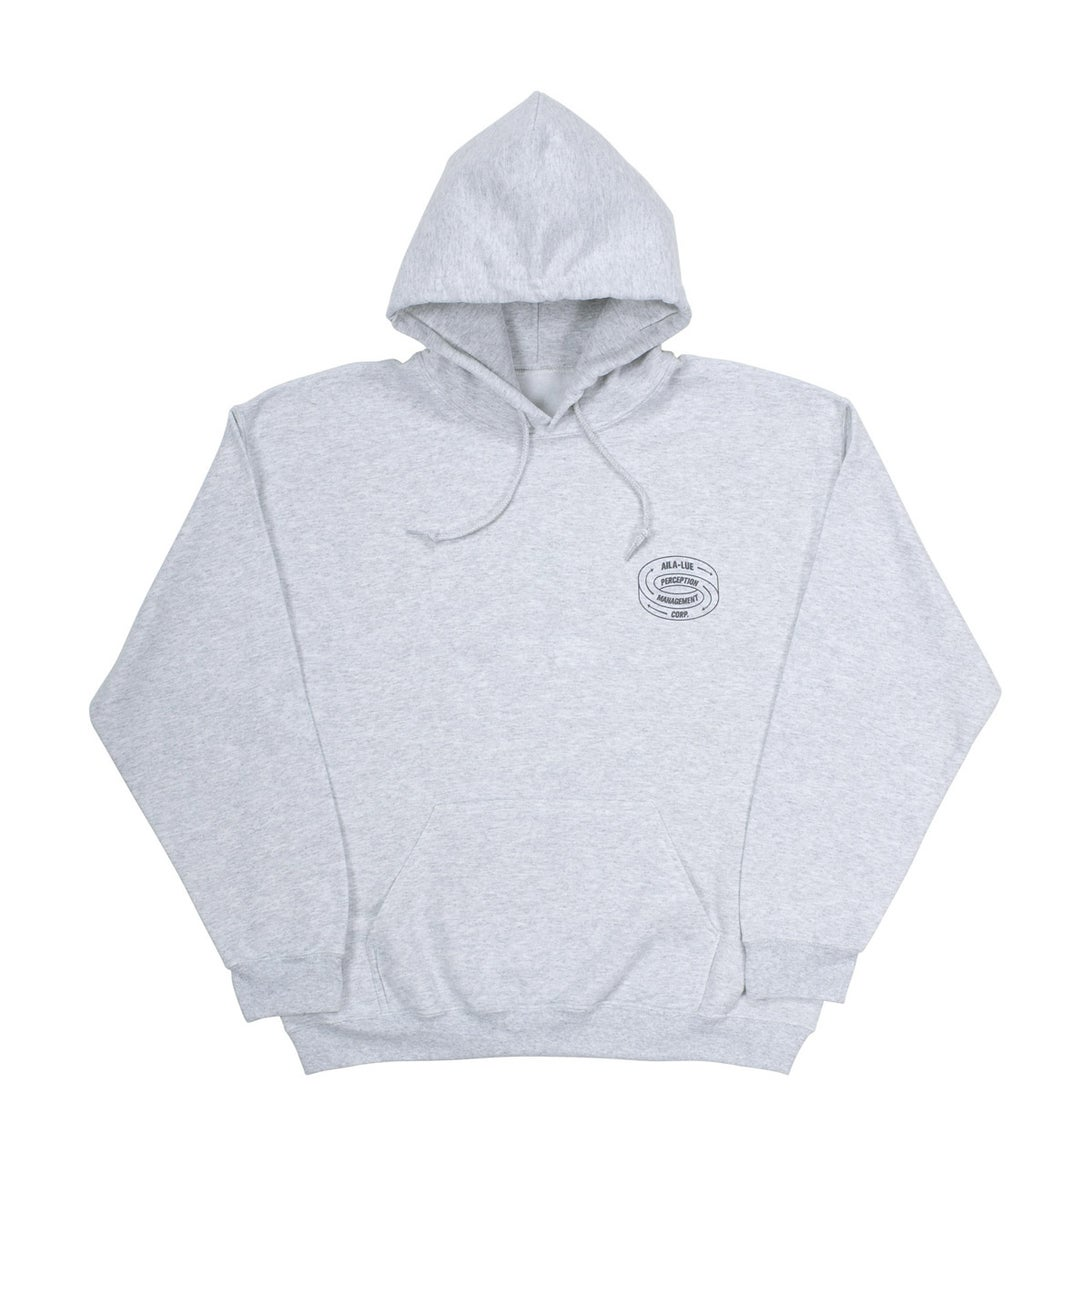 Image of Perception Management Hoodie